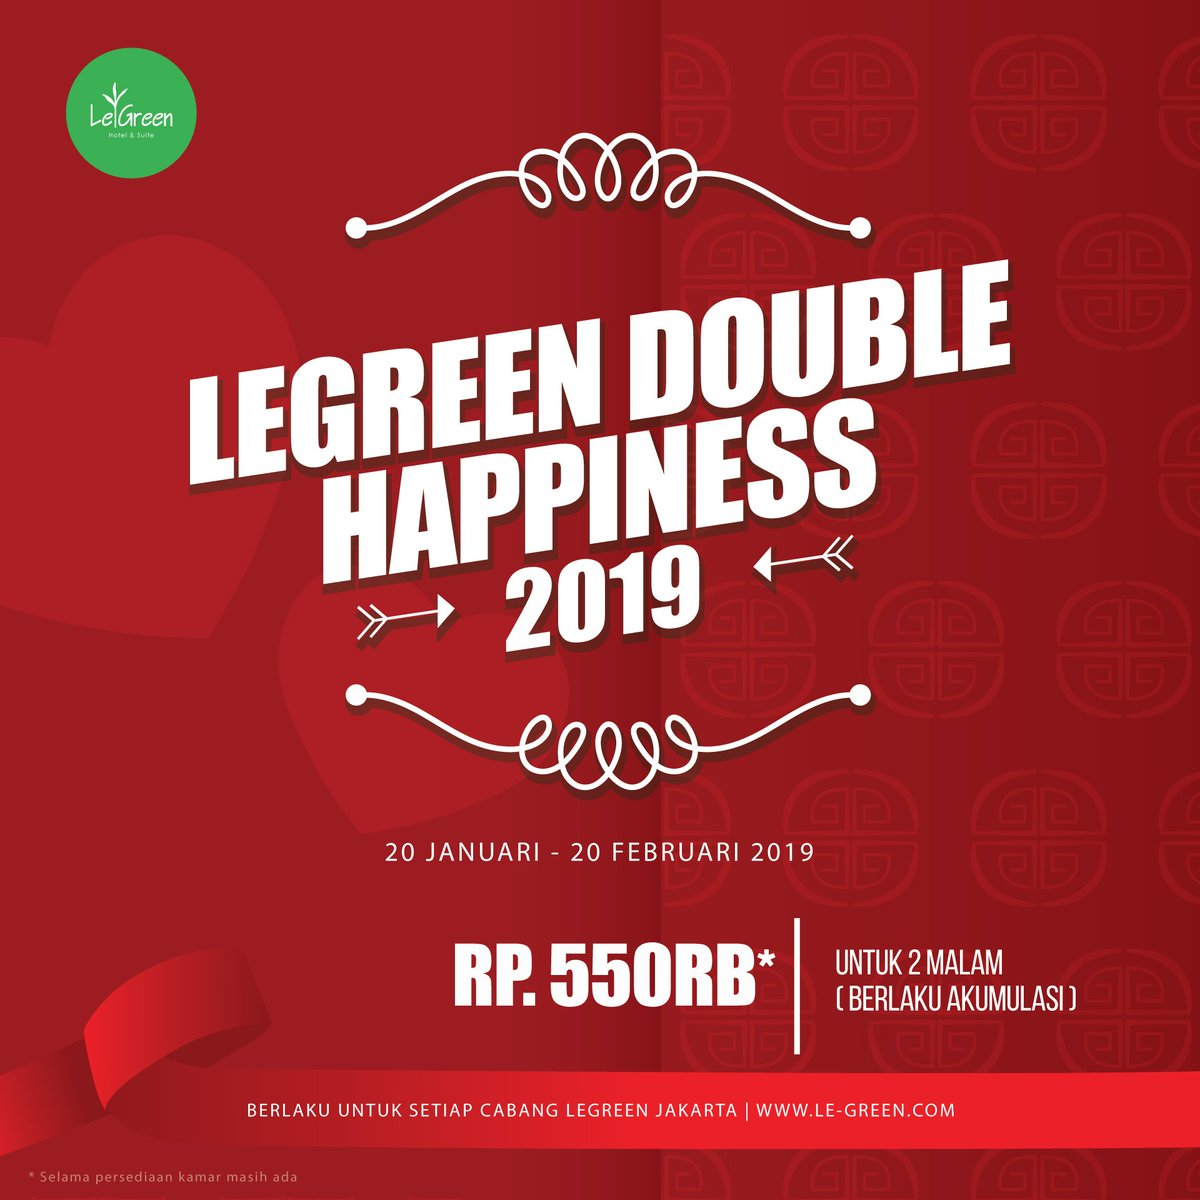 LEGREEN DOUBLE HAPPINESS 2019